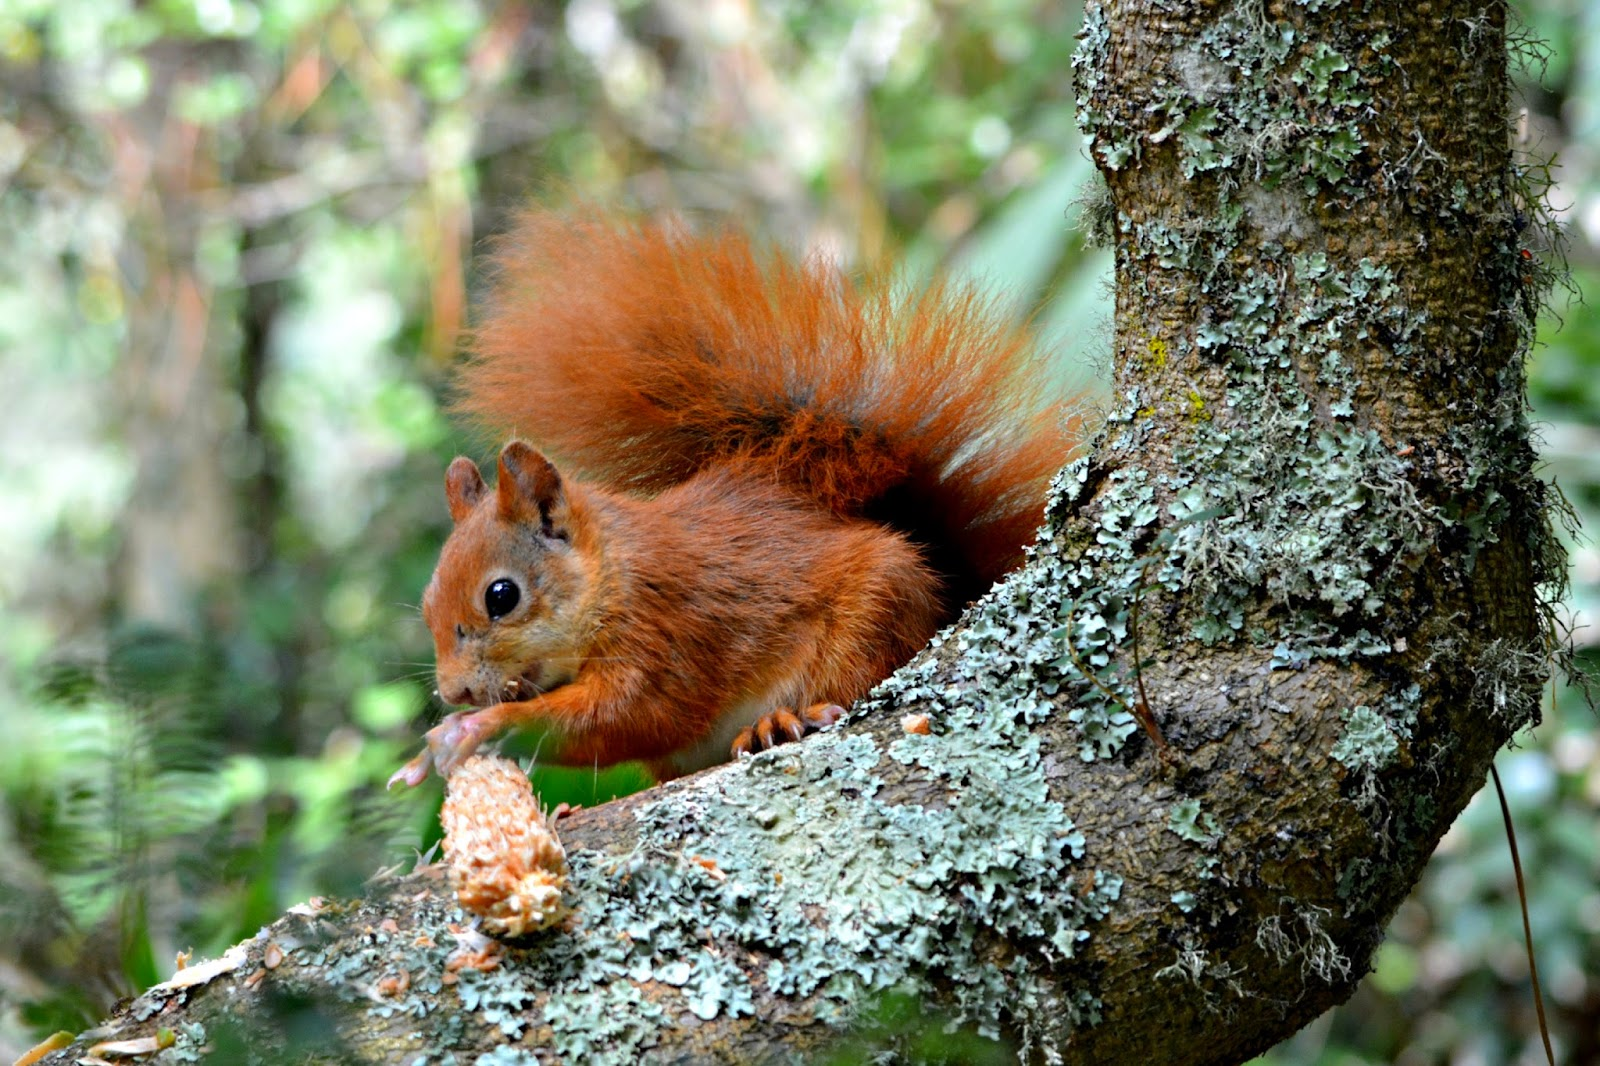 Red squirrel in Tresco Abbey Gardens on Isles of Scilly